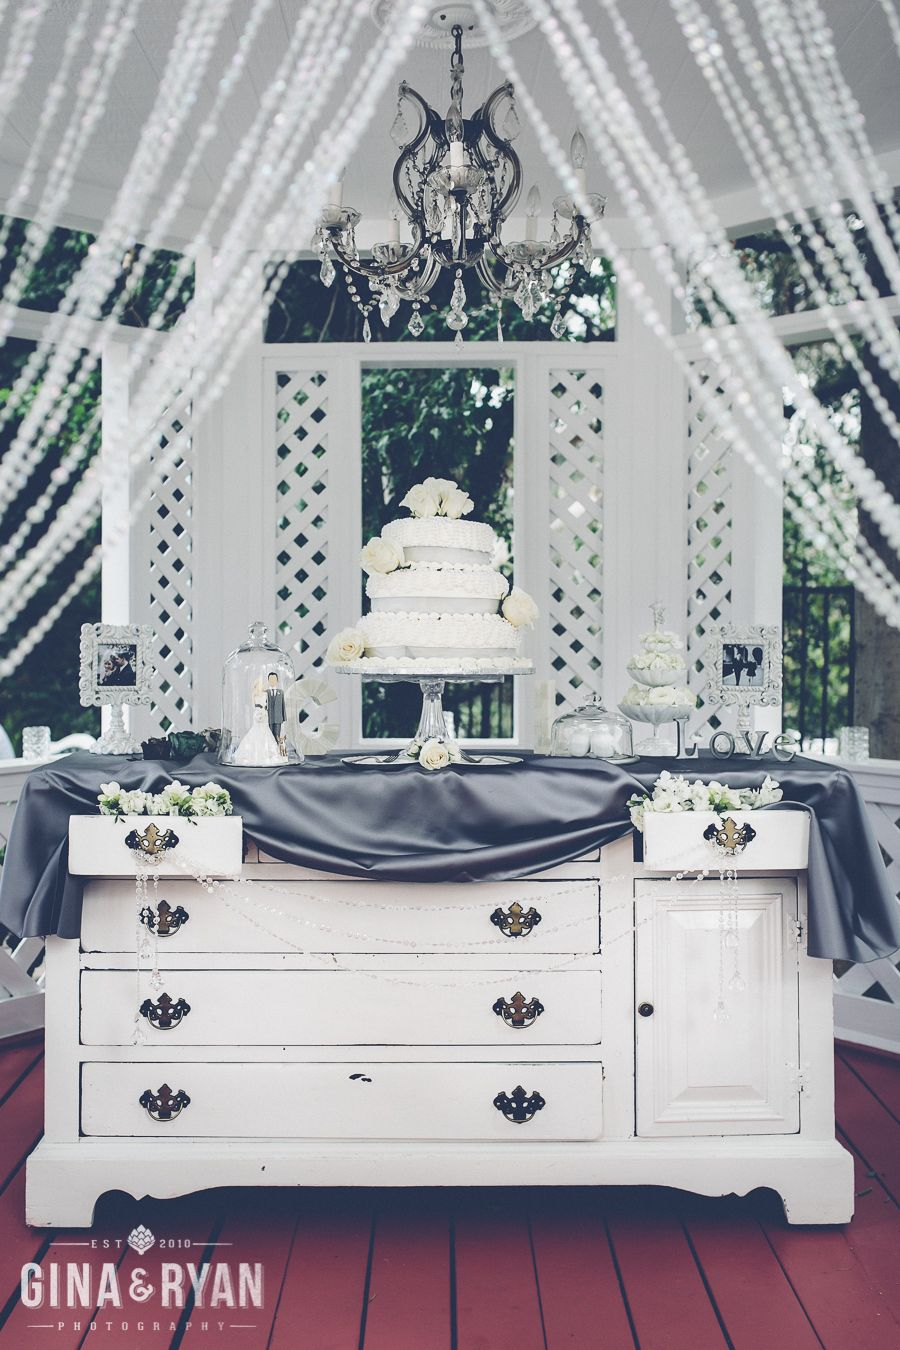 The dreamy cake design with hanging chandelier crystal curtain the dreamy cake design with hanging chandelier crystal curtain crystal strands and flowers at arubaitofo Images